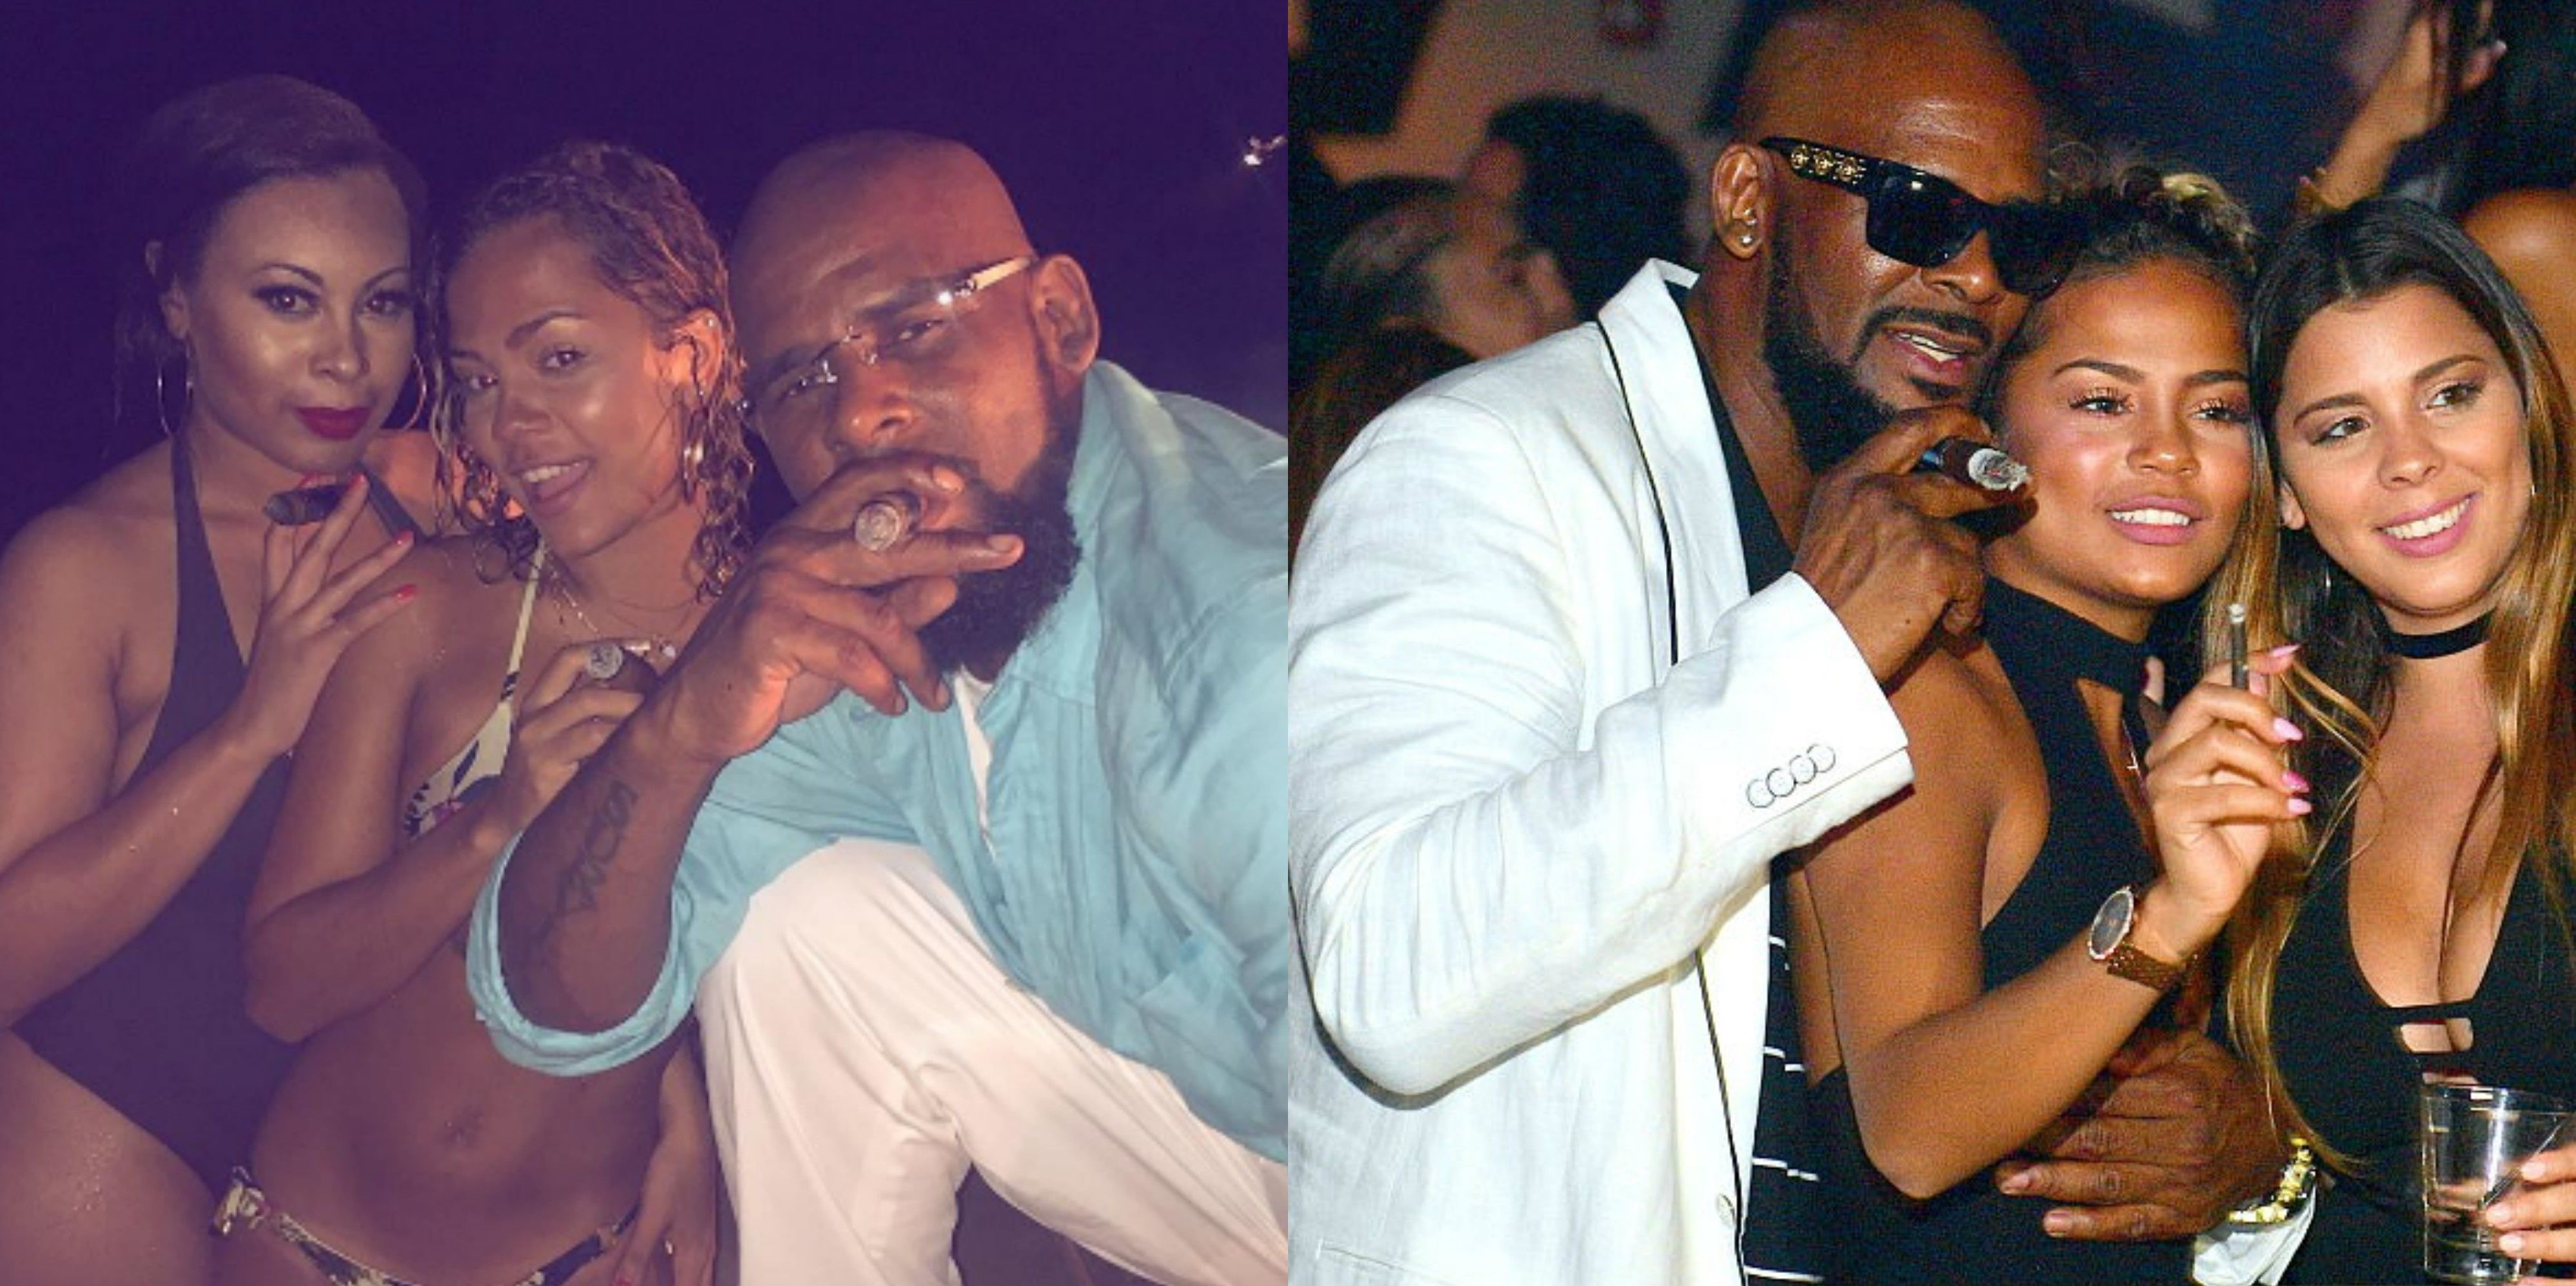 Shocking Details About R. Kelly's Alleged Cult | TheRichest